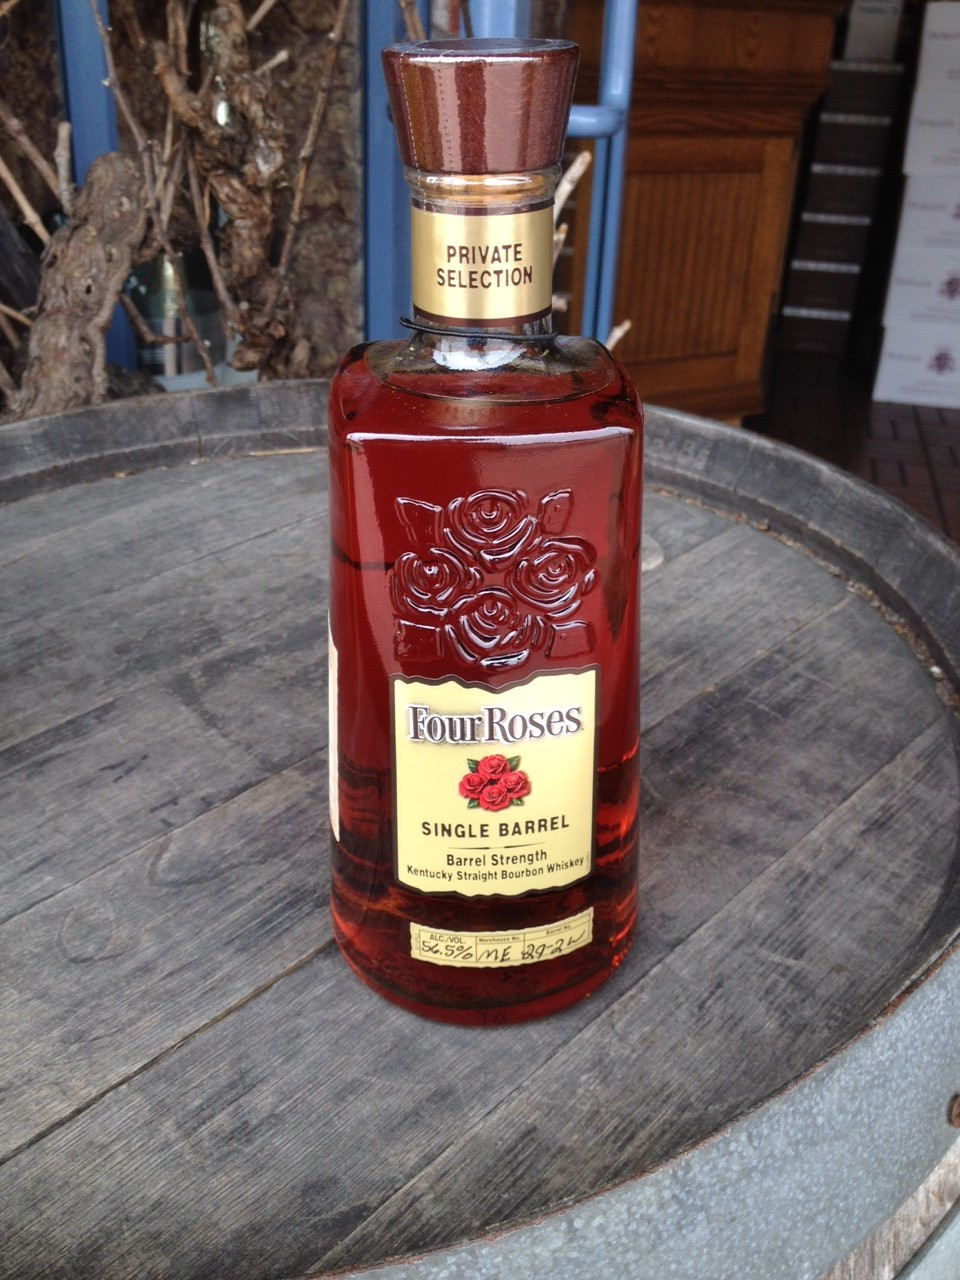 Four Roses Single Barrel Private Selection from SF Wine Trading